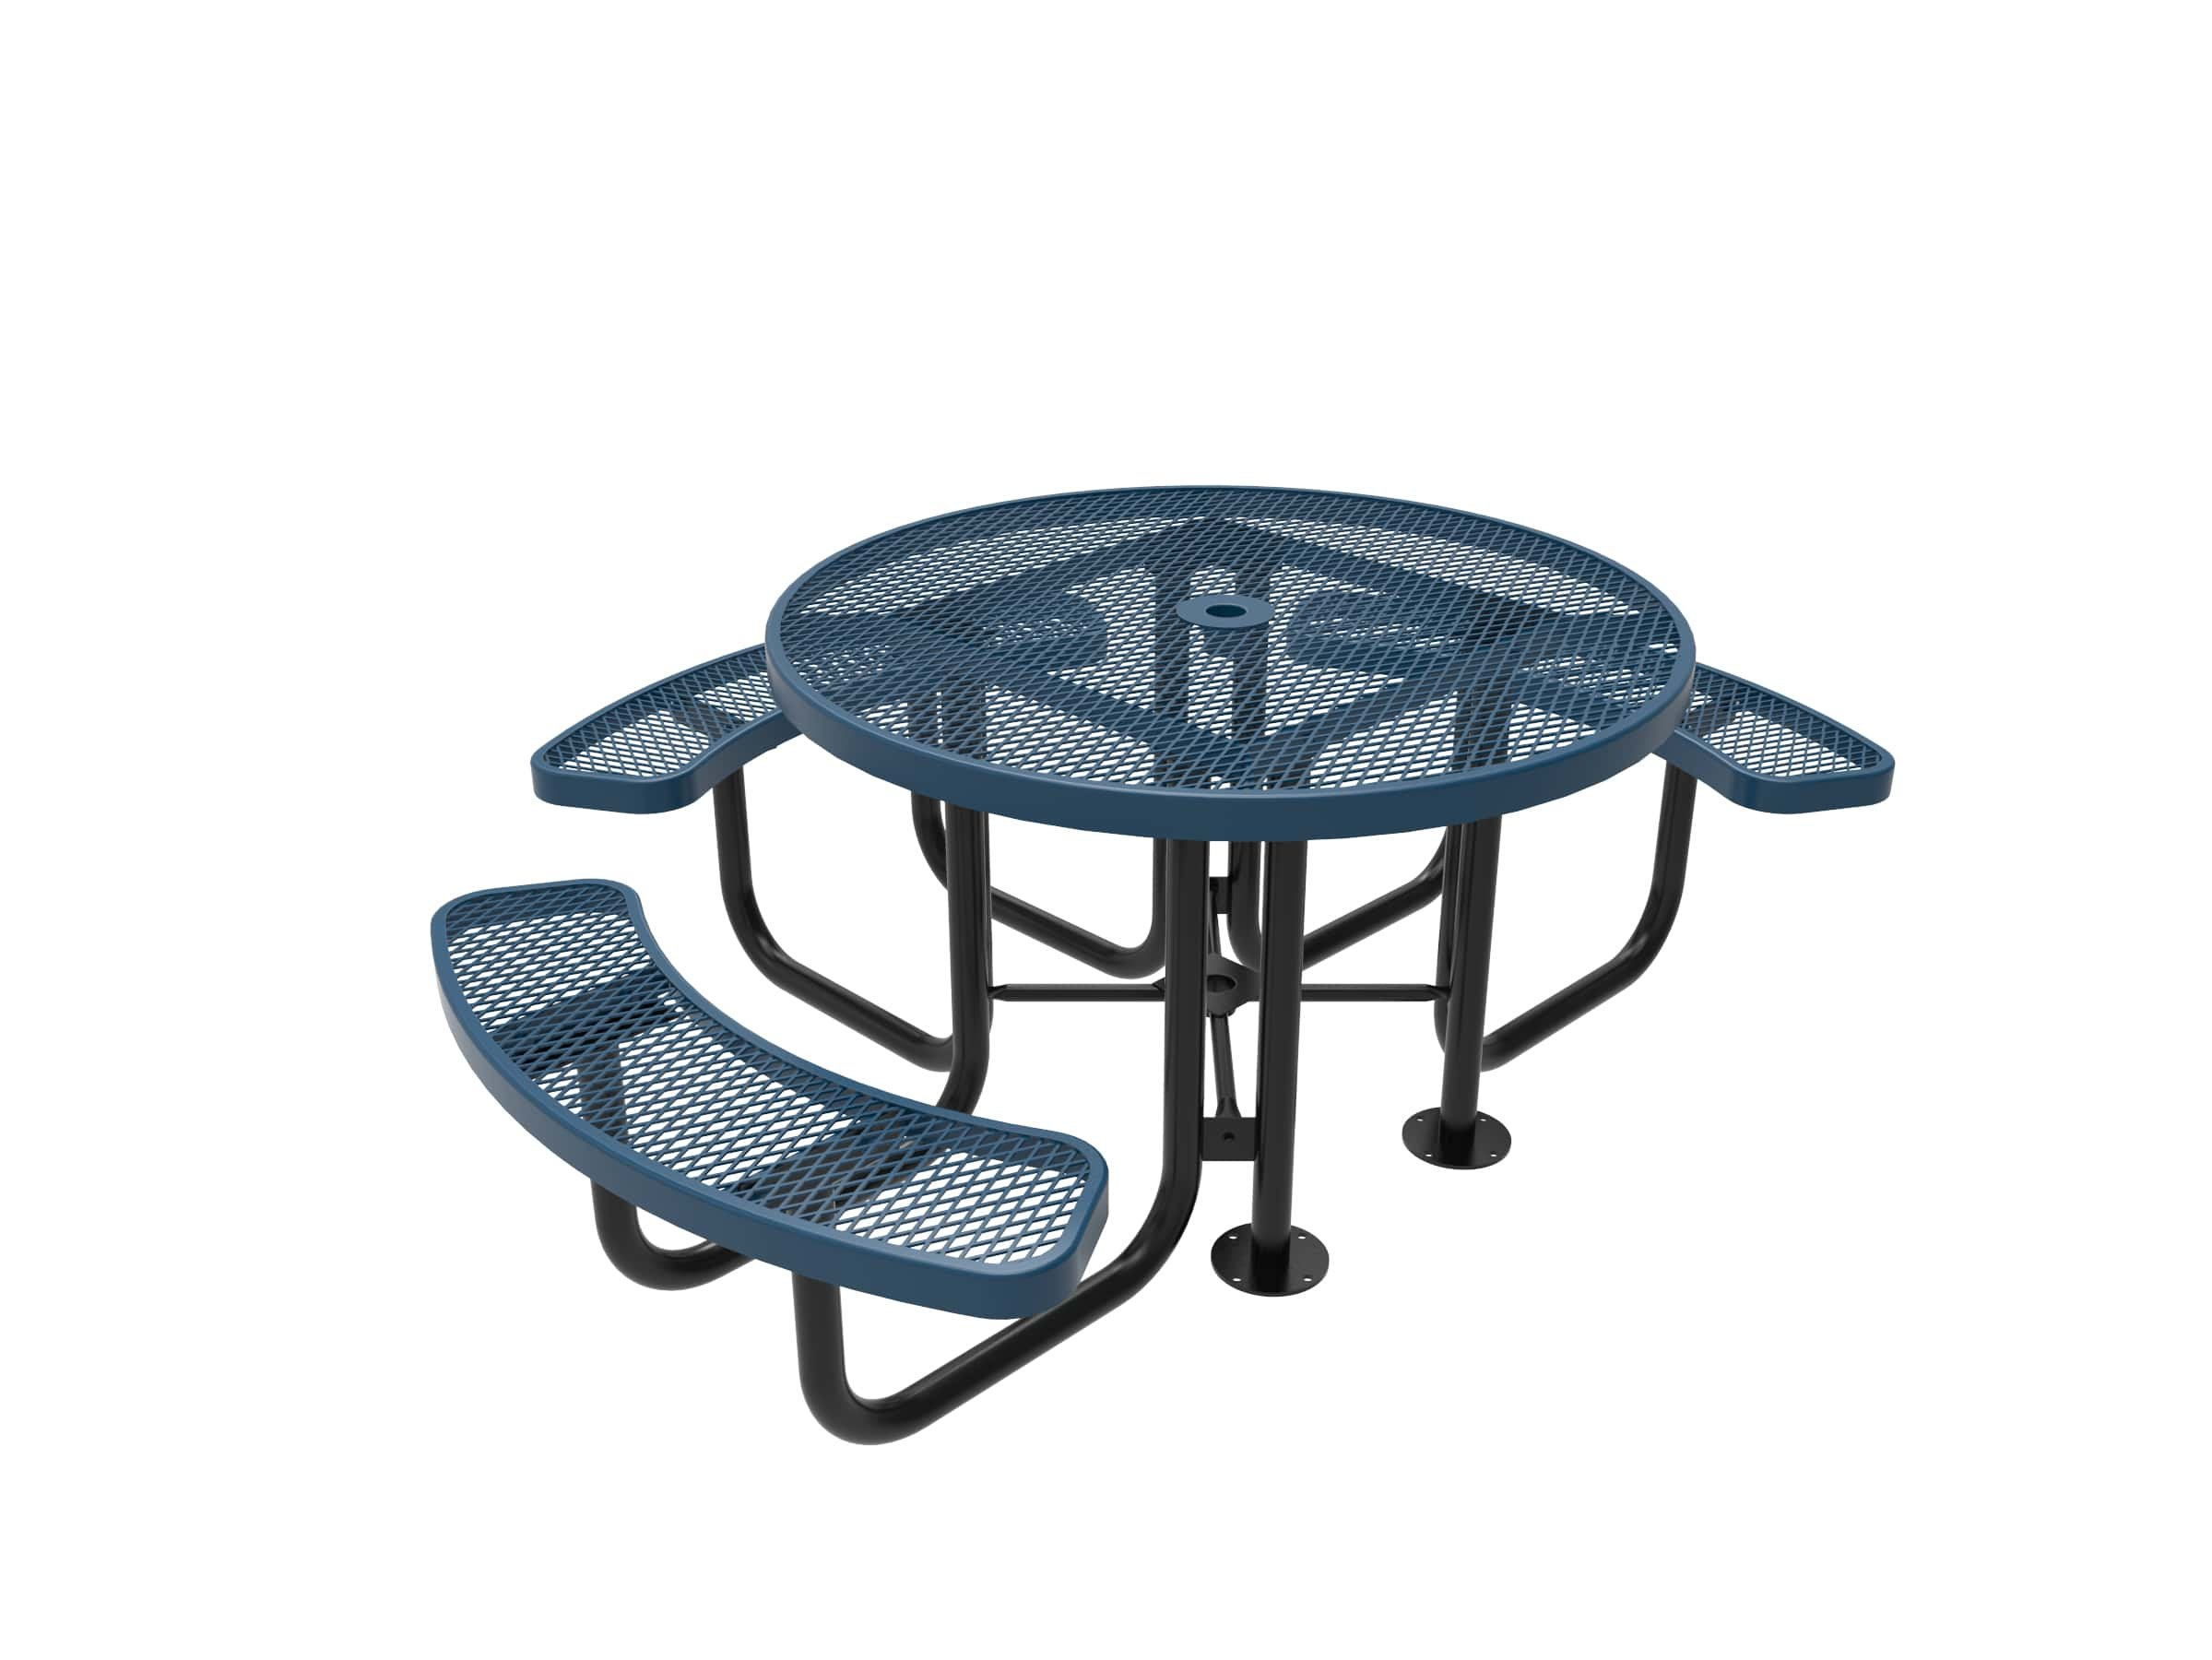 CoatedOutdoorFurniture TRD3-LBL Top Round Portable Picnic Table, 46-Inch, Light Blue by CoatedOutdoorFurniture